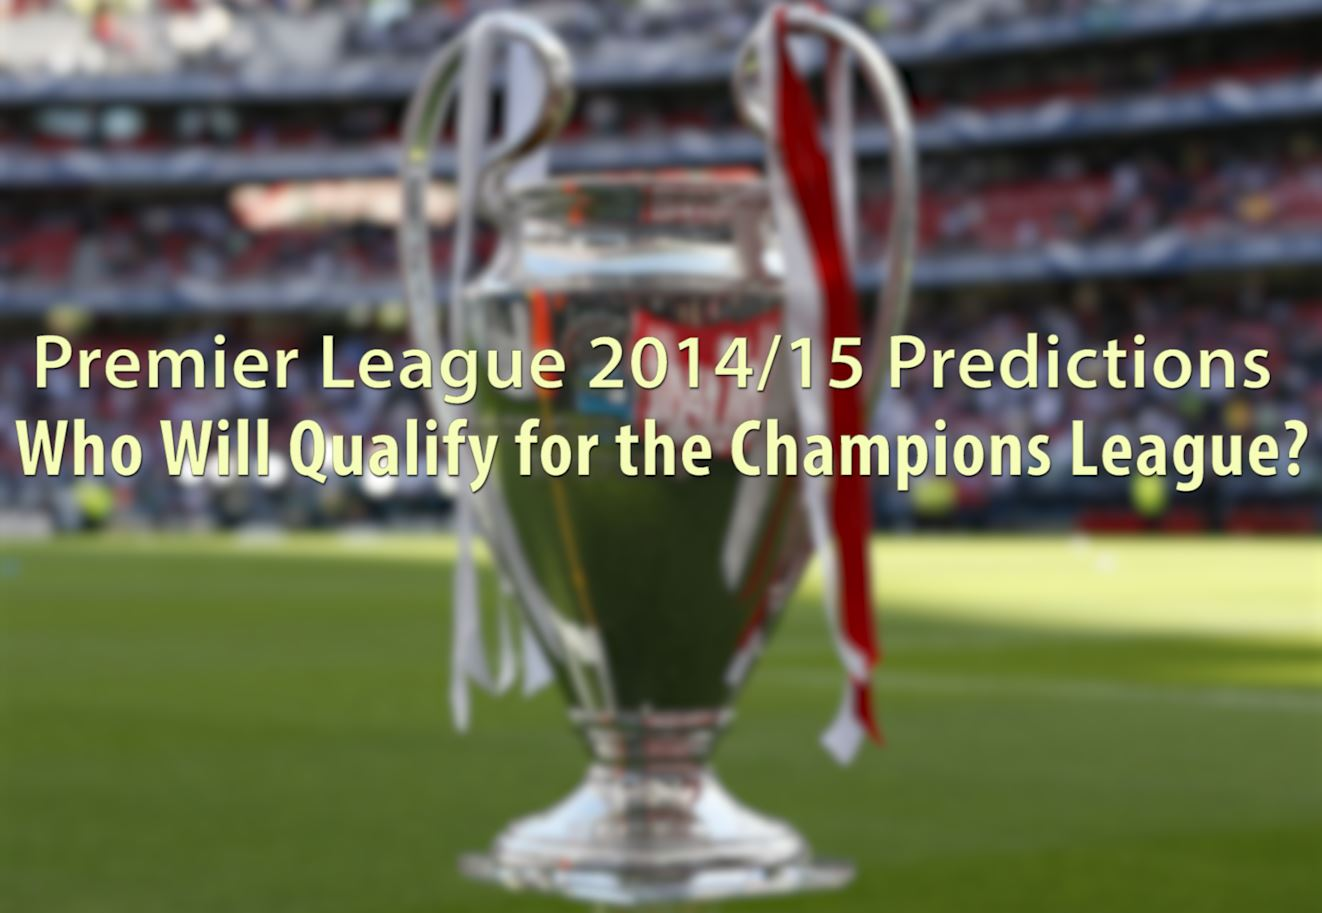 Premier League 2014/15 Predictions: Who Will Qualify for the Champions League?